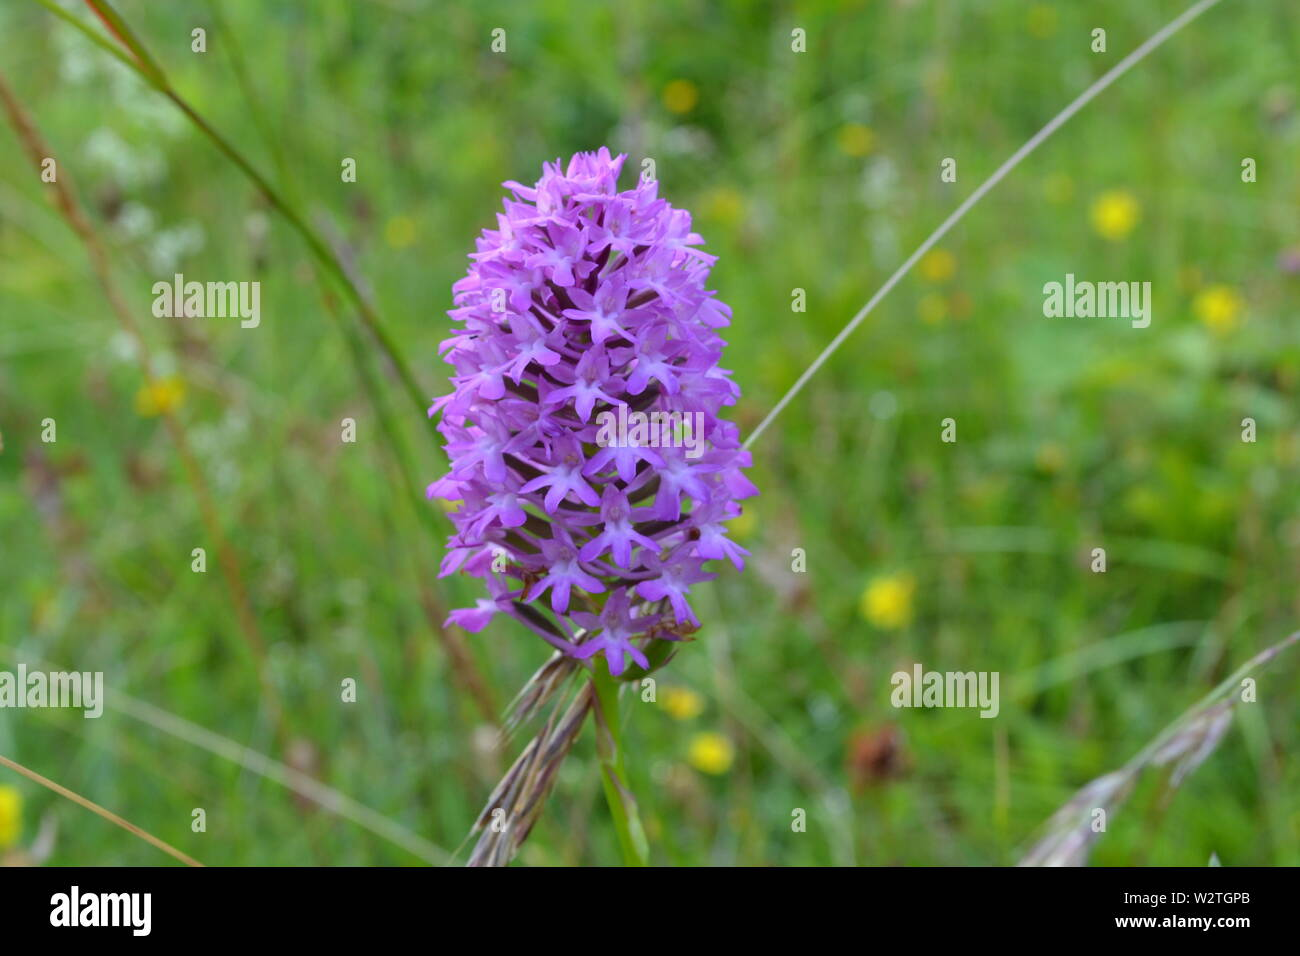 Pyramidal orchid (Anacamptis pyramidalis) wildflowers at Downe Bank, north west Kent, where Charles Darwin, who lived nearby, used to study plants - Stock Image